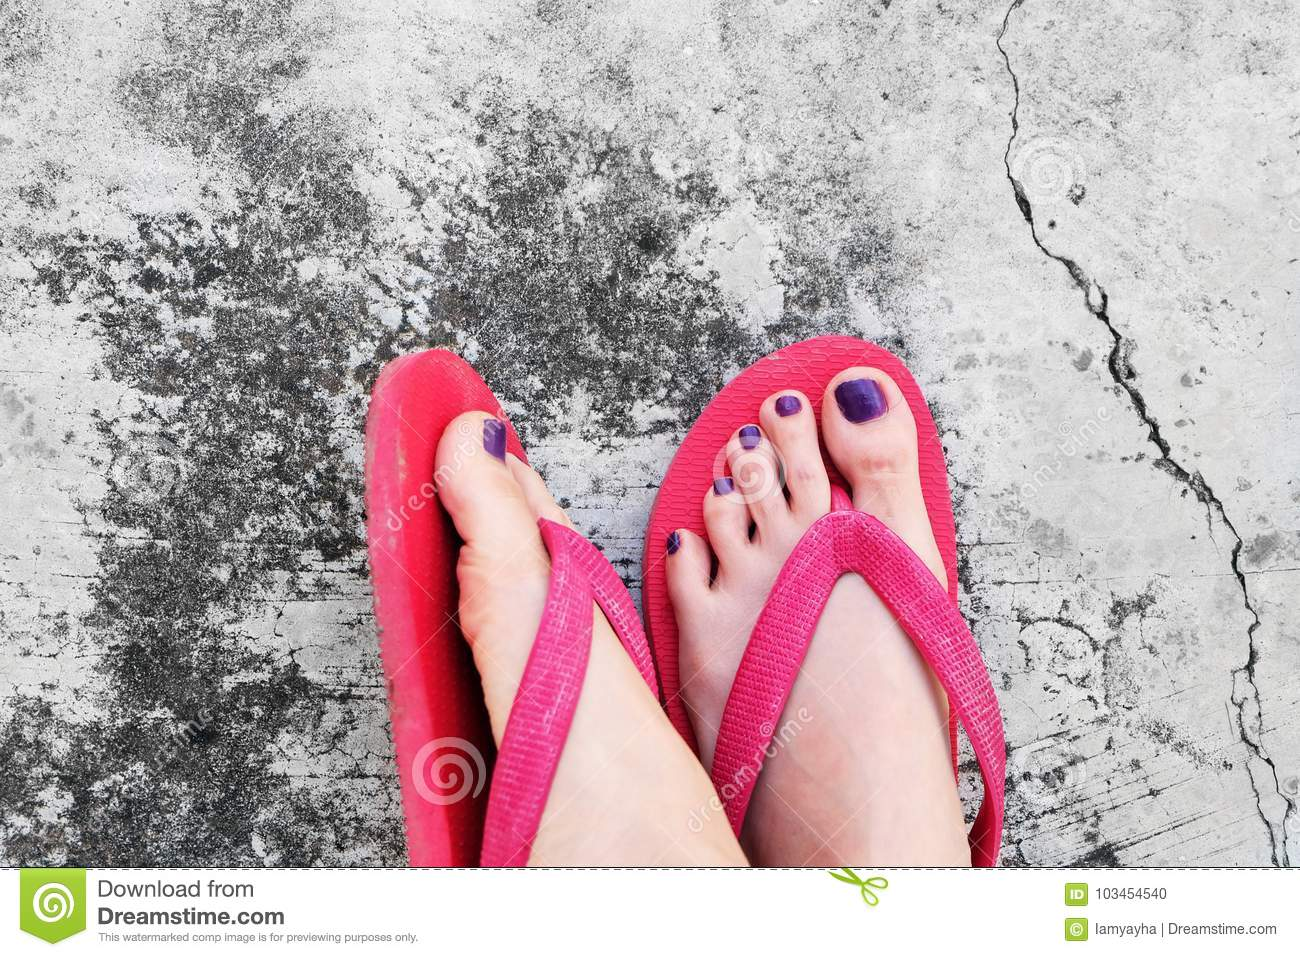 3568fd256117 Nails Pedicure. Selfie Woman s Sandals Feet with Violet Nail Pedicure of  Paint on Cement Background